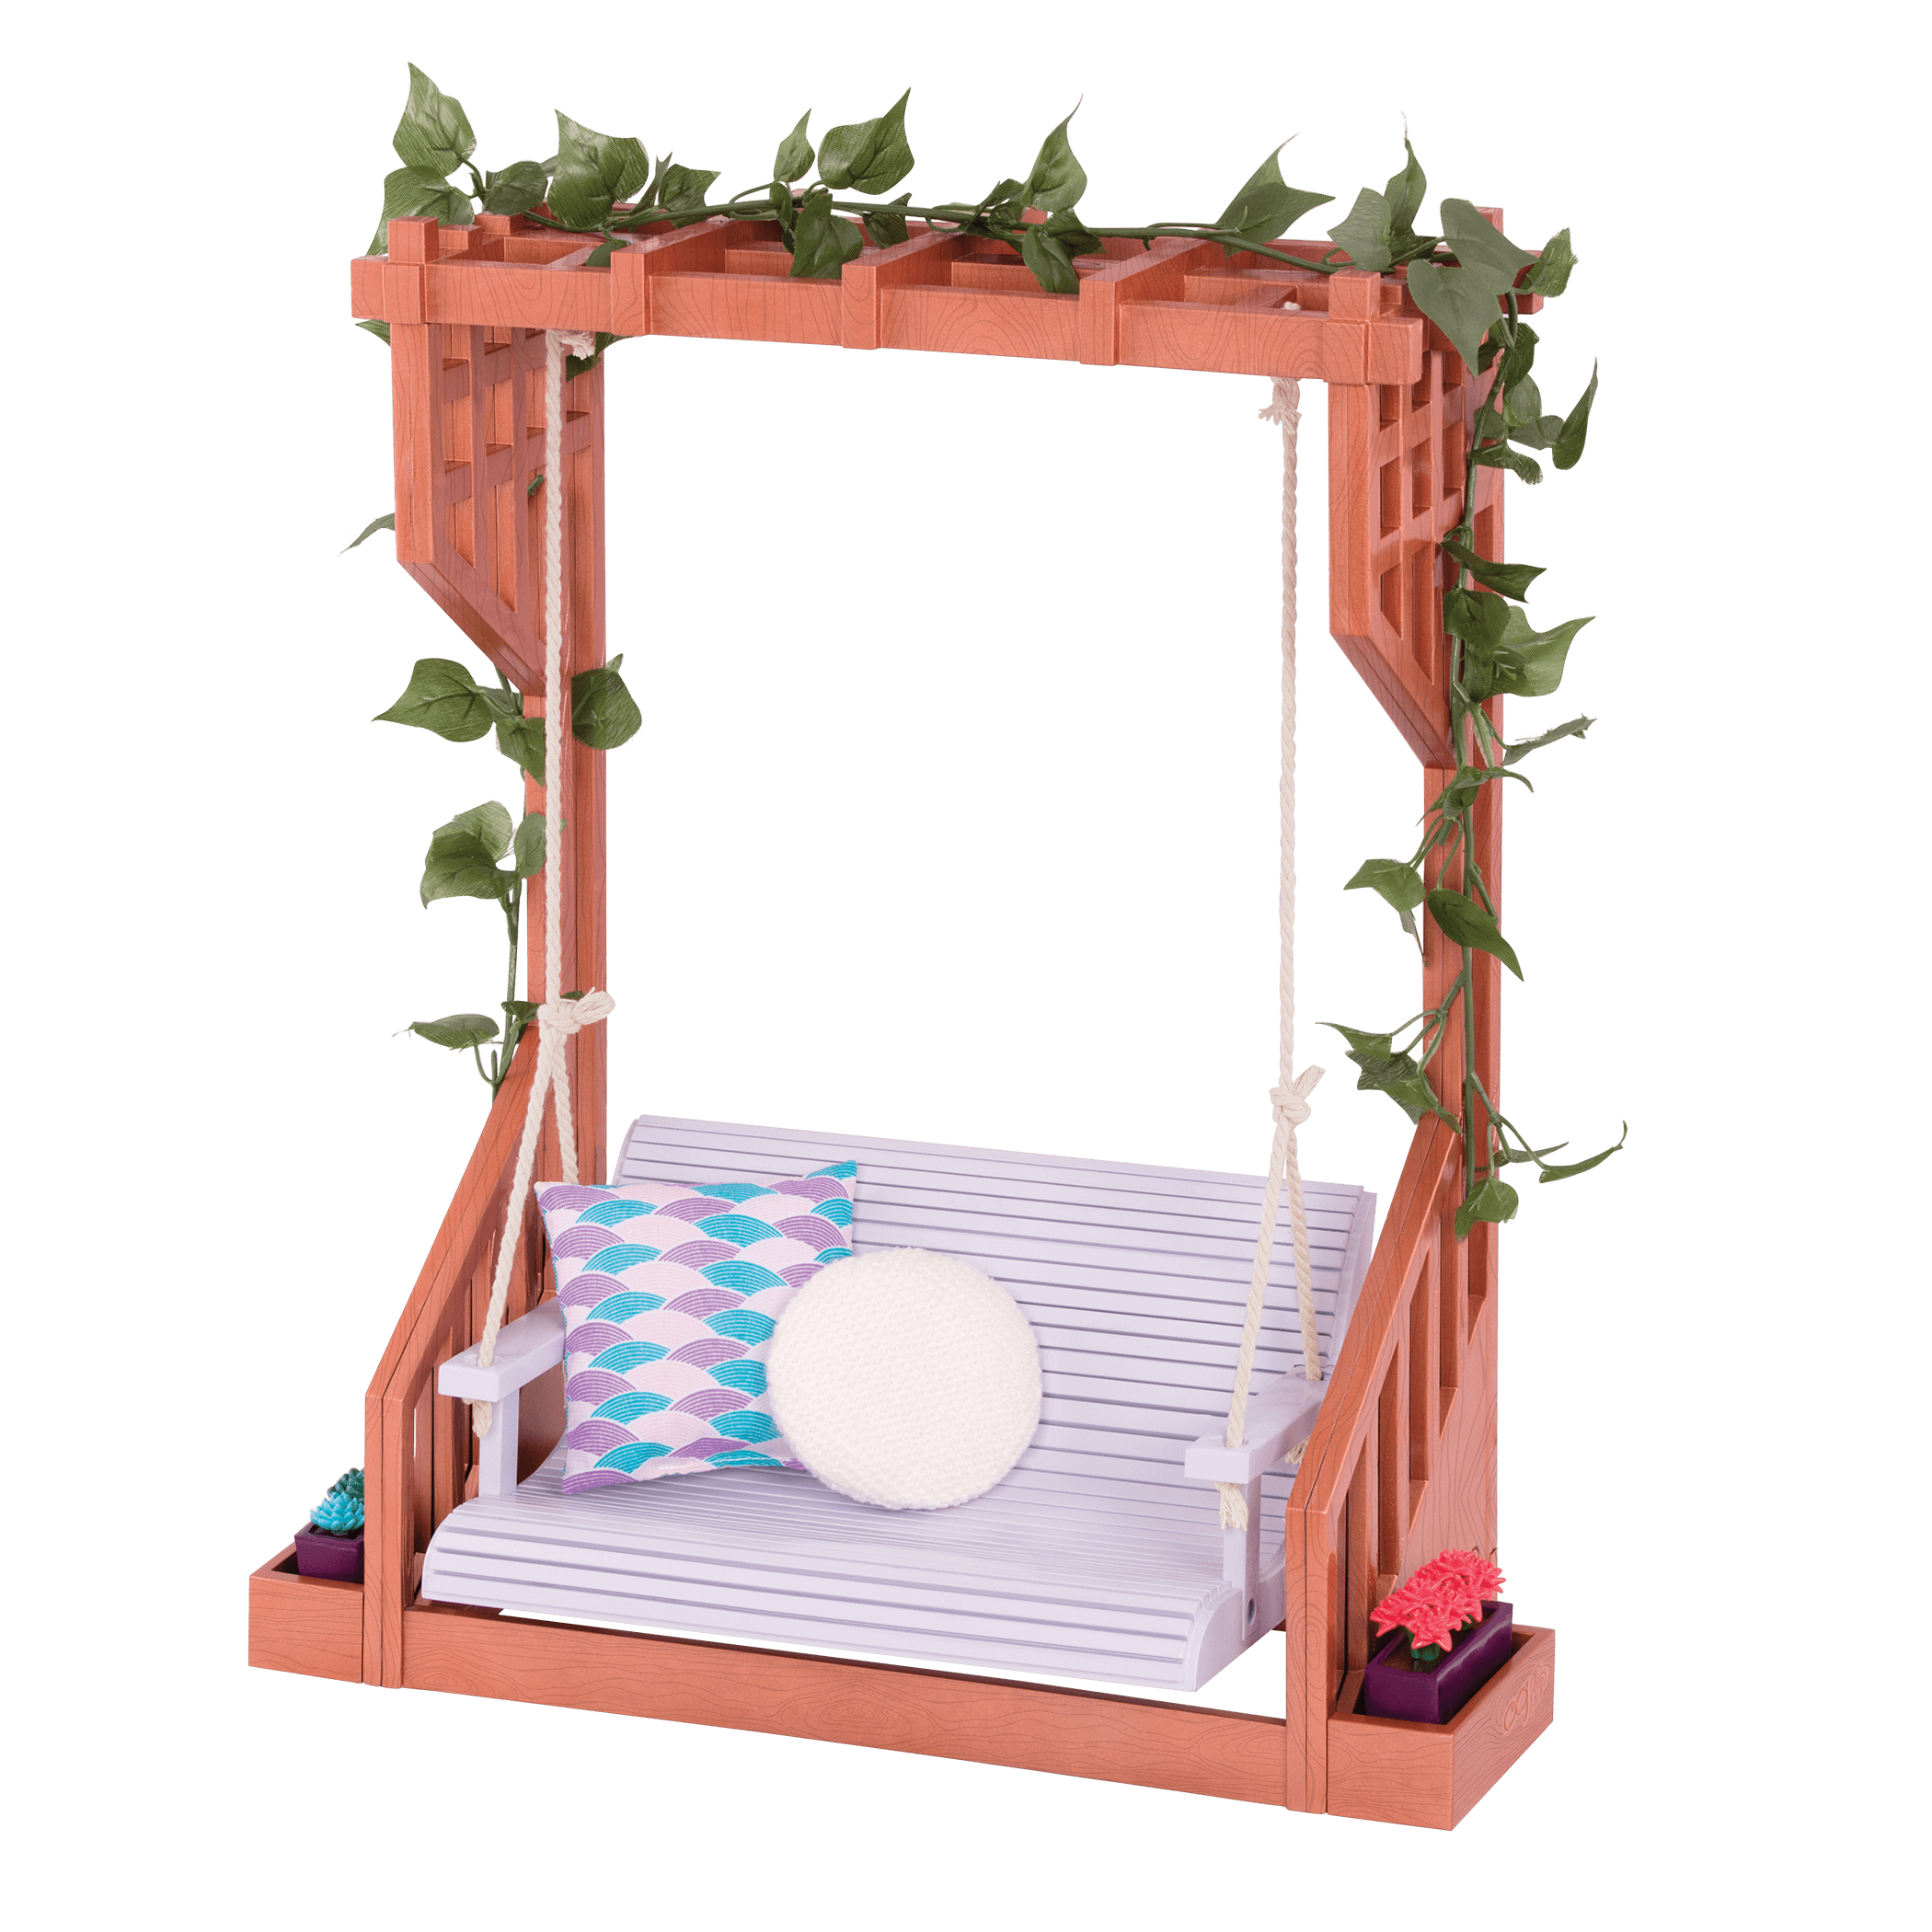 Peaceful Pergola Accessory for 18-inch Dolls